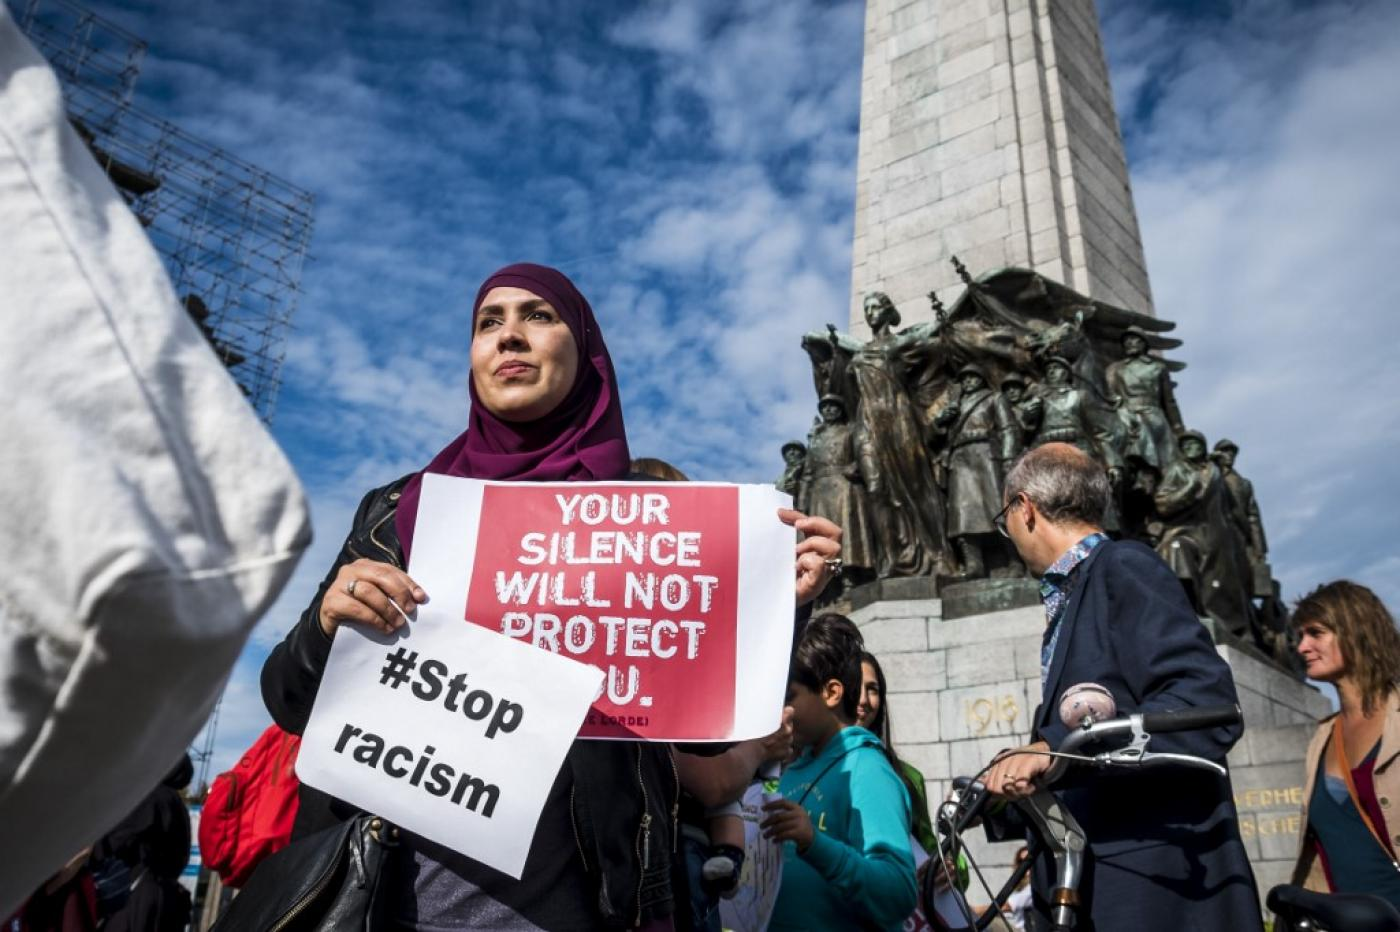 Can Islamophobia Be Overcome Through Education?